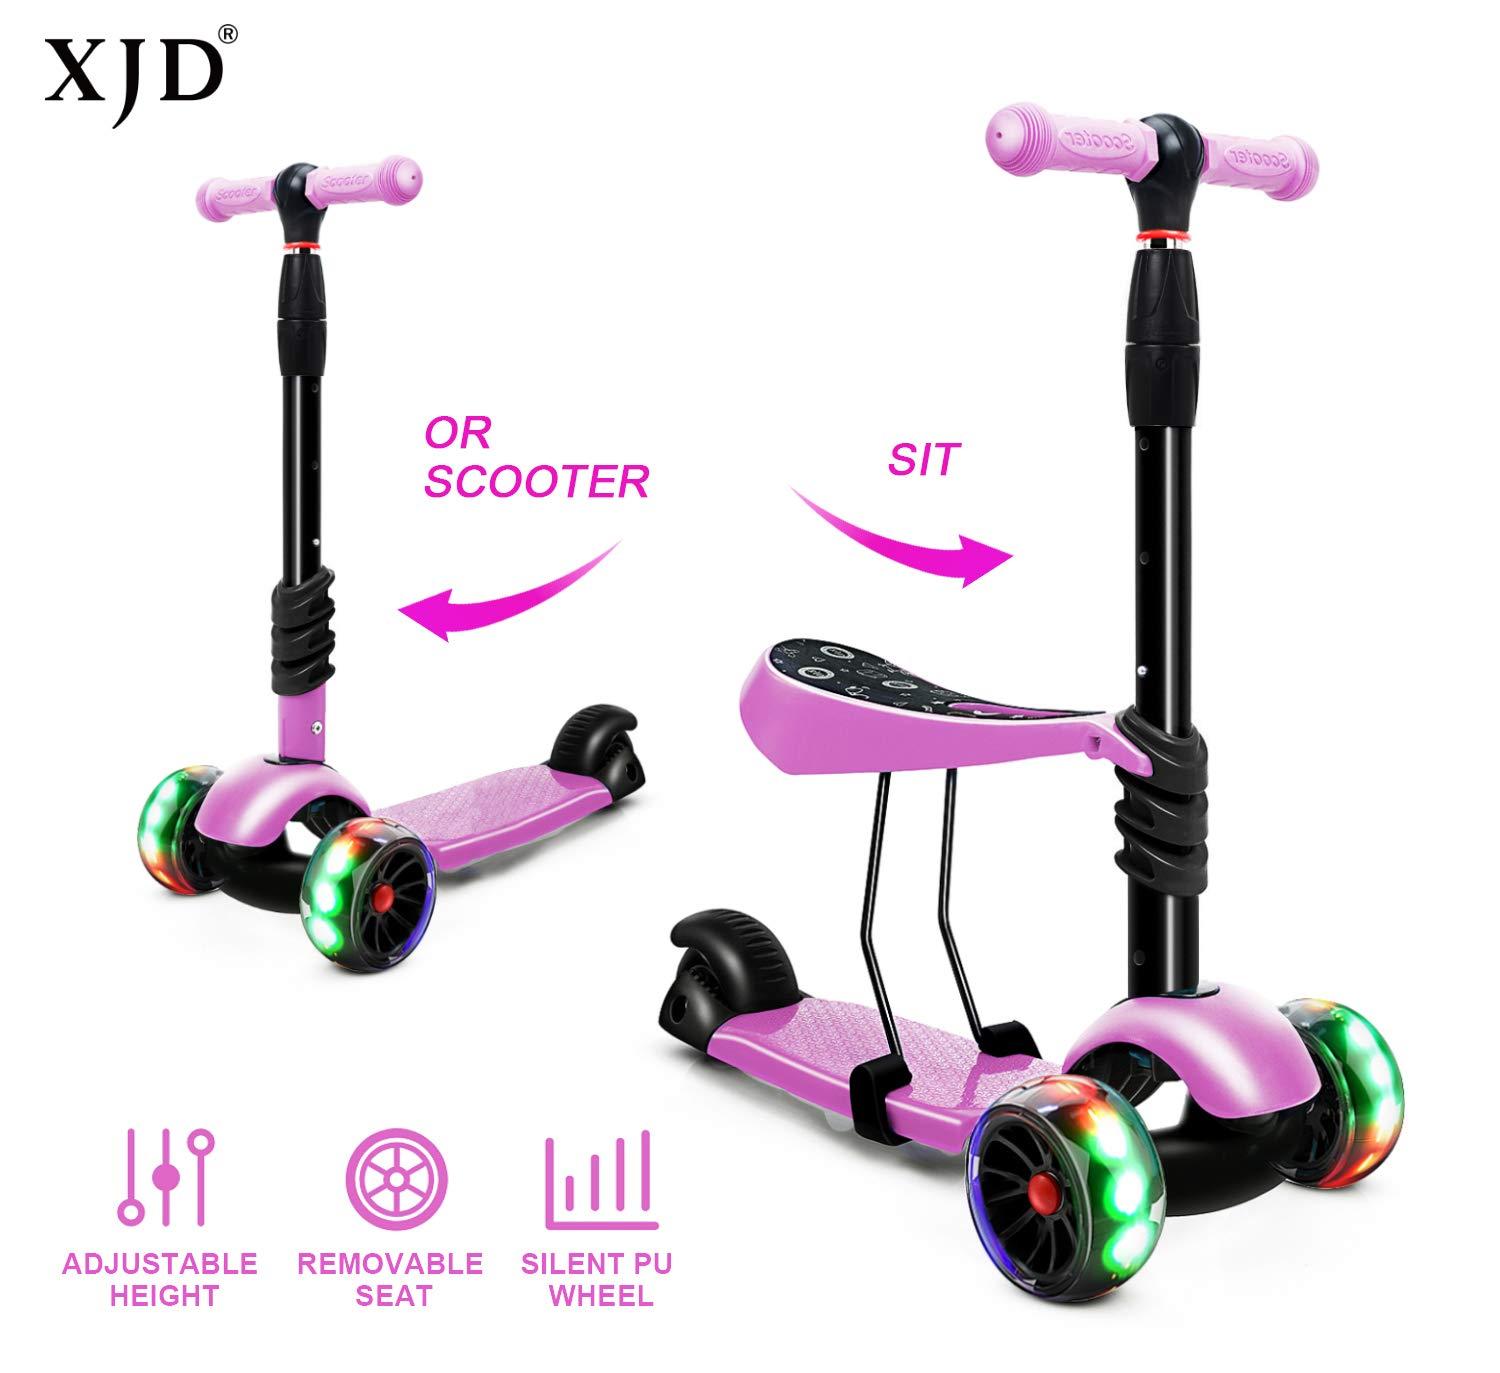 XJD 2 in 1 Toddler Scooter Kids Kick Scooter with Removable Seat Scooter for Kids Boys Girls Adjustable Height Extra Wide Deck PU Flashing Wheels for Children from 2 to 8 Years Old